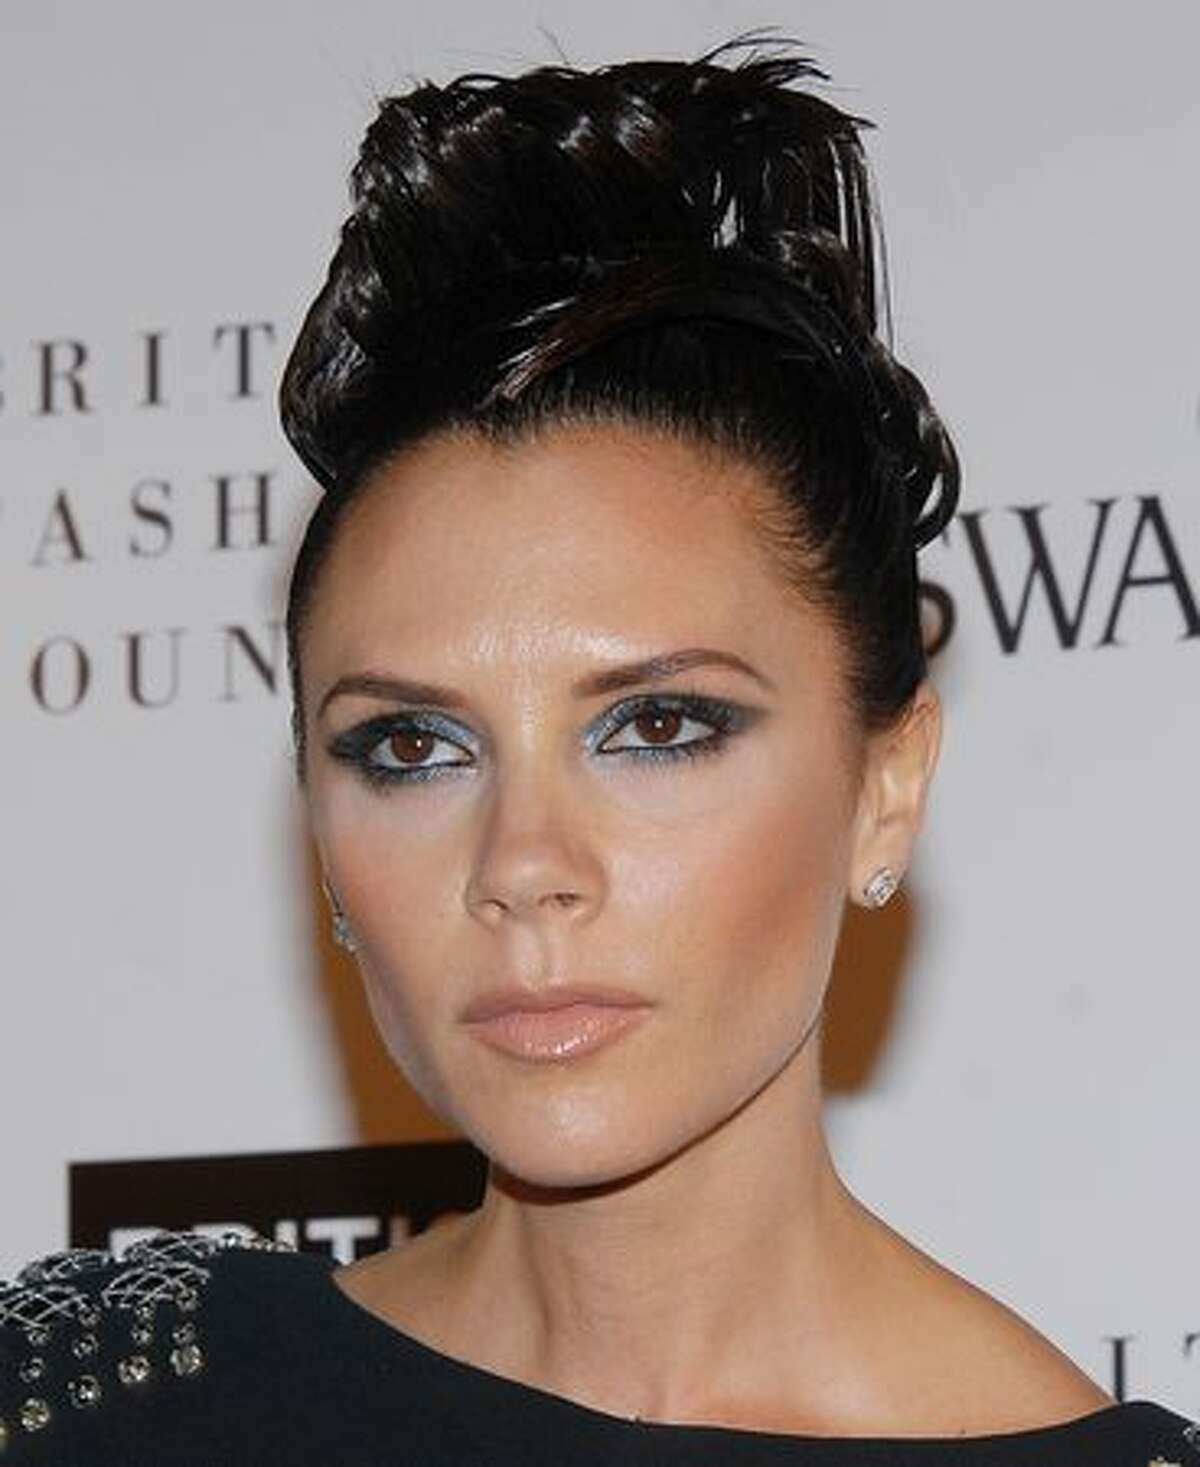 Victoria Beckham attends the British Fashion Awards at Royal Courts of Justice, Strand in London, England.